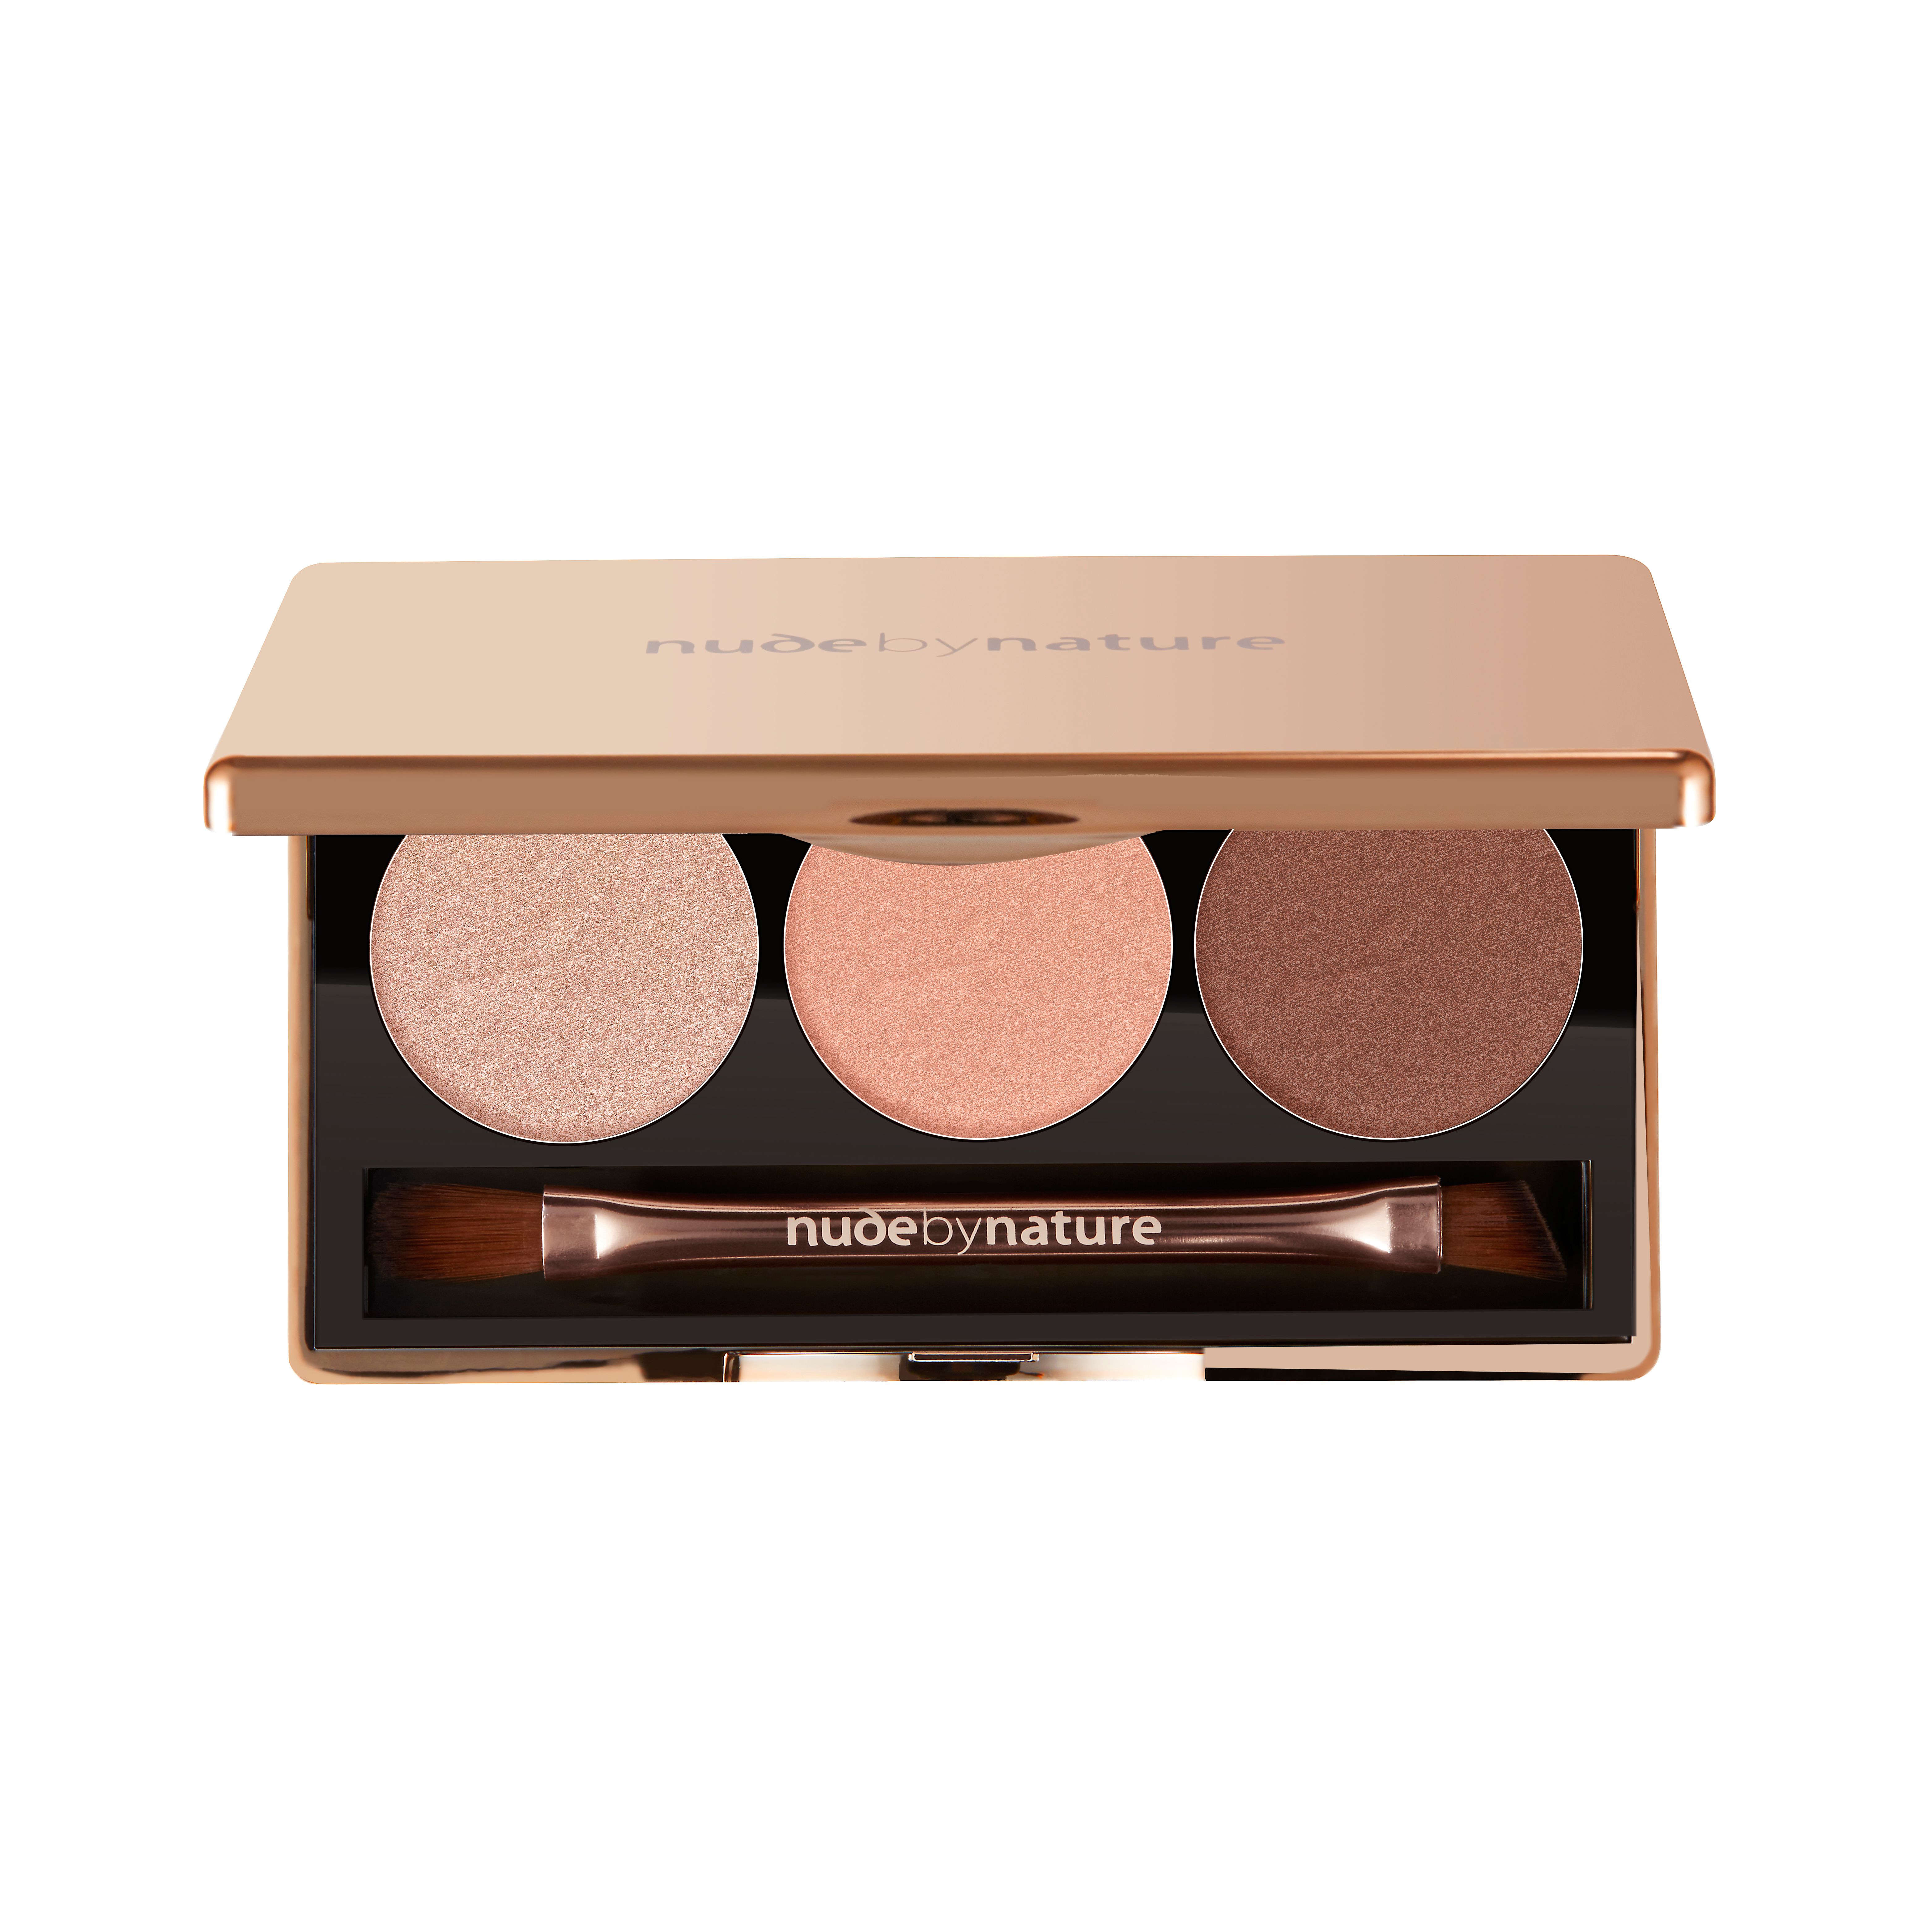 Nude by Nature Illusion Eyeshadow Trio, rose